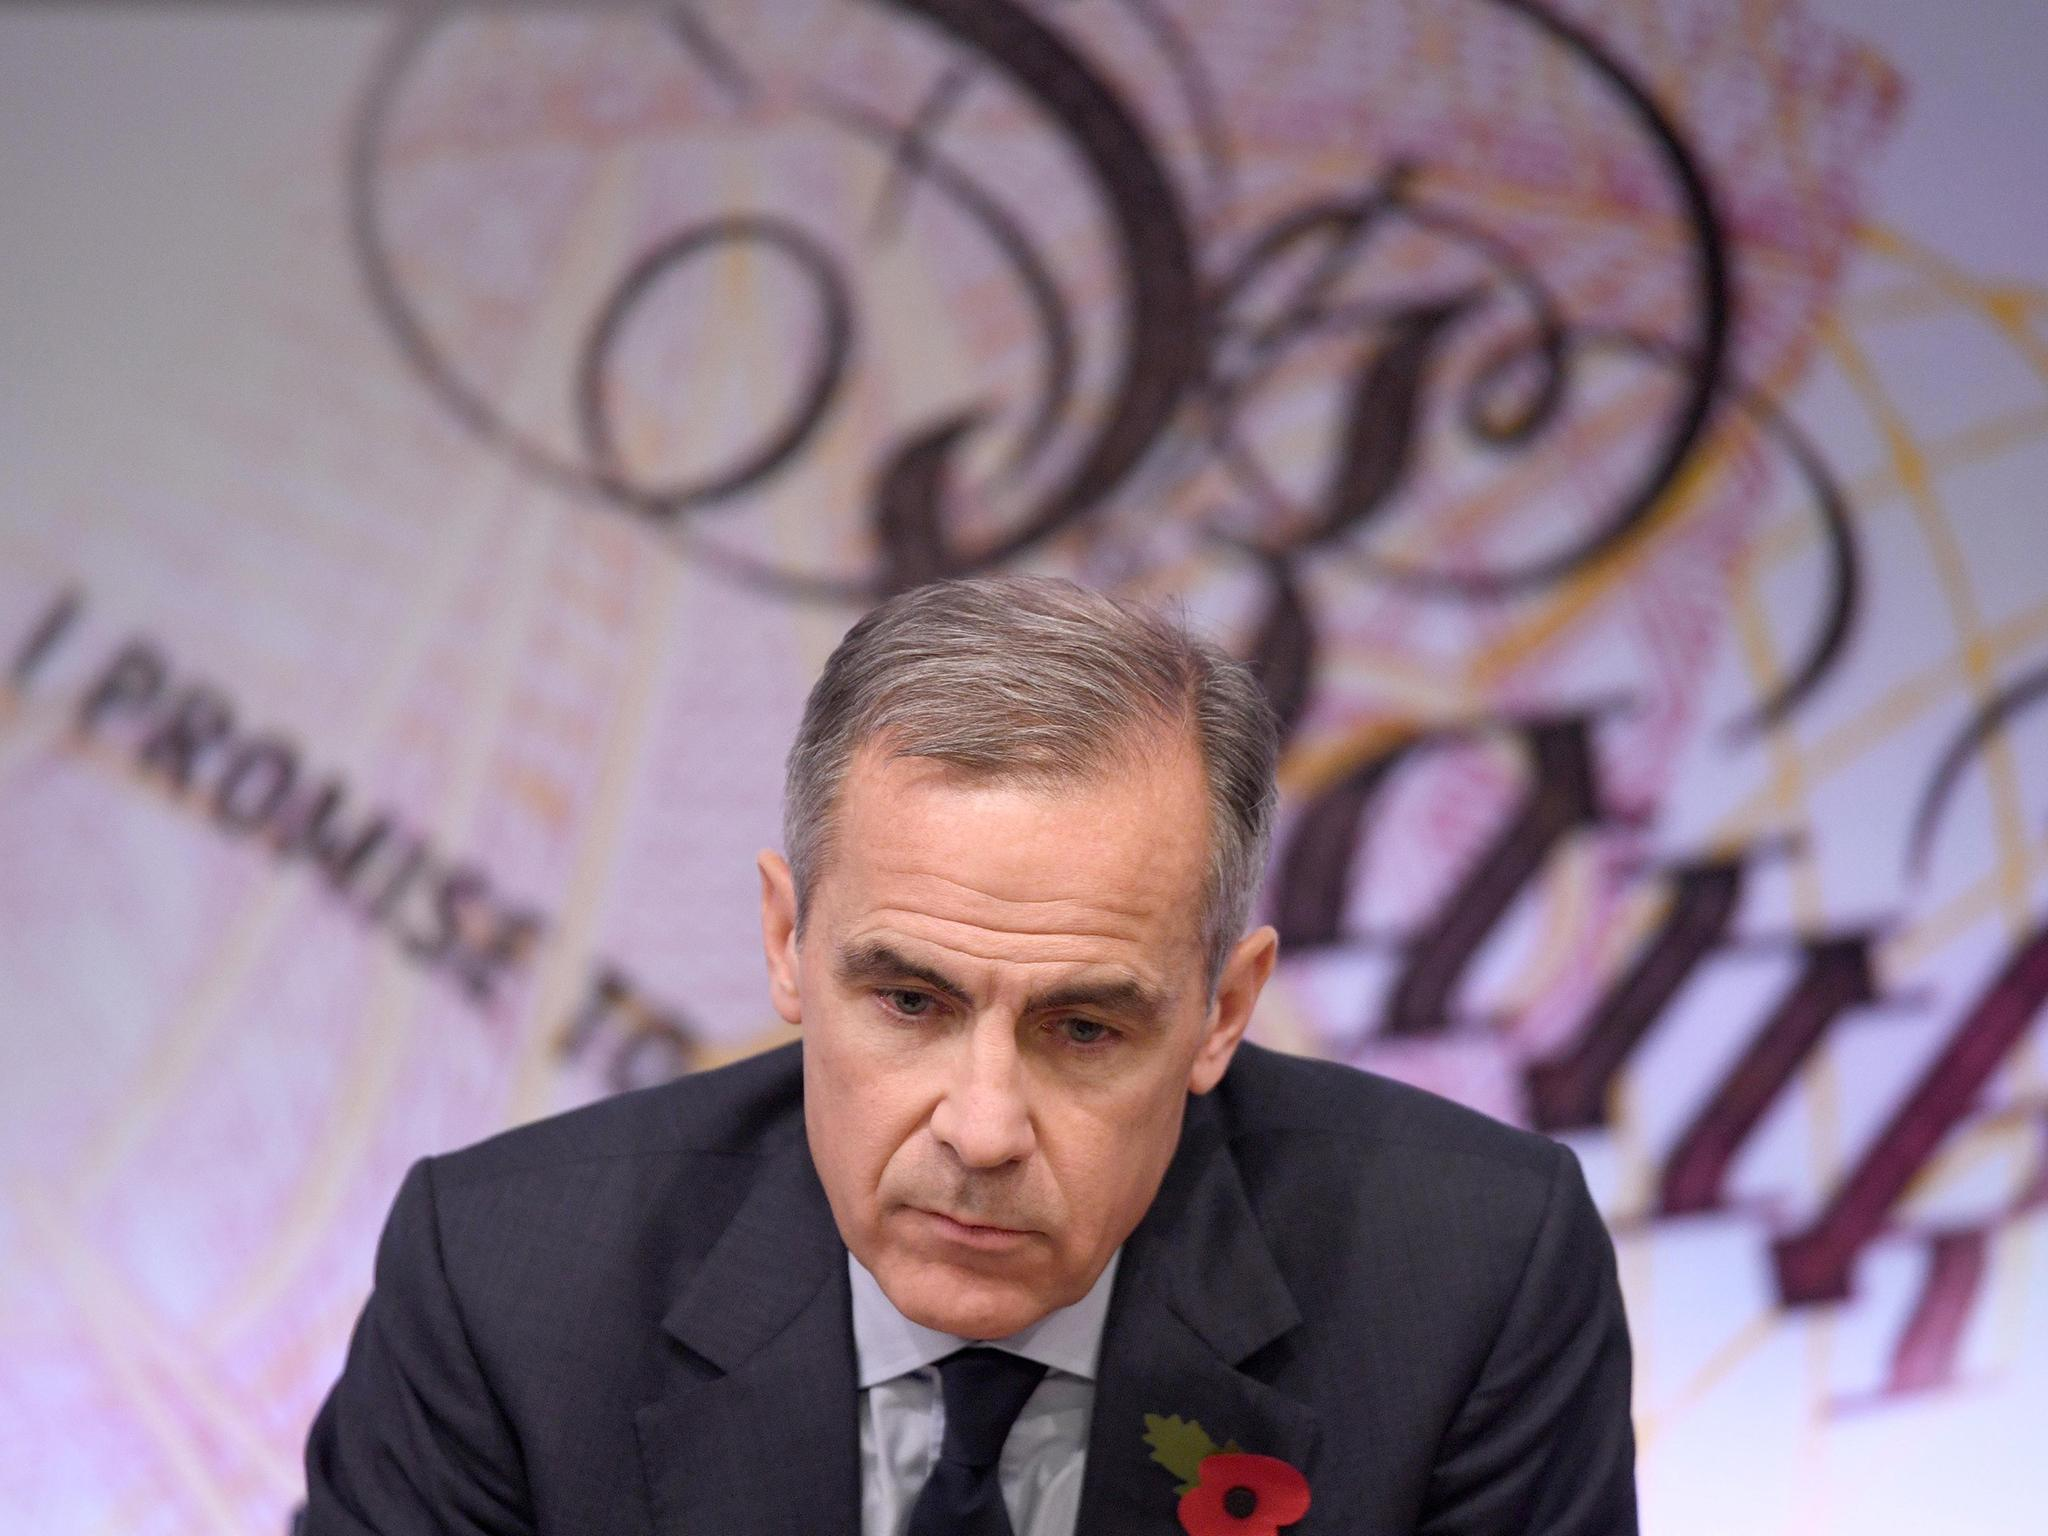 Brexit: UK could scrap cap on bankers' bonuses after leaving EU, says Mark Carney